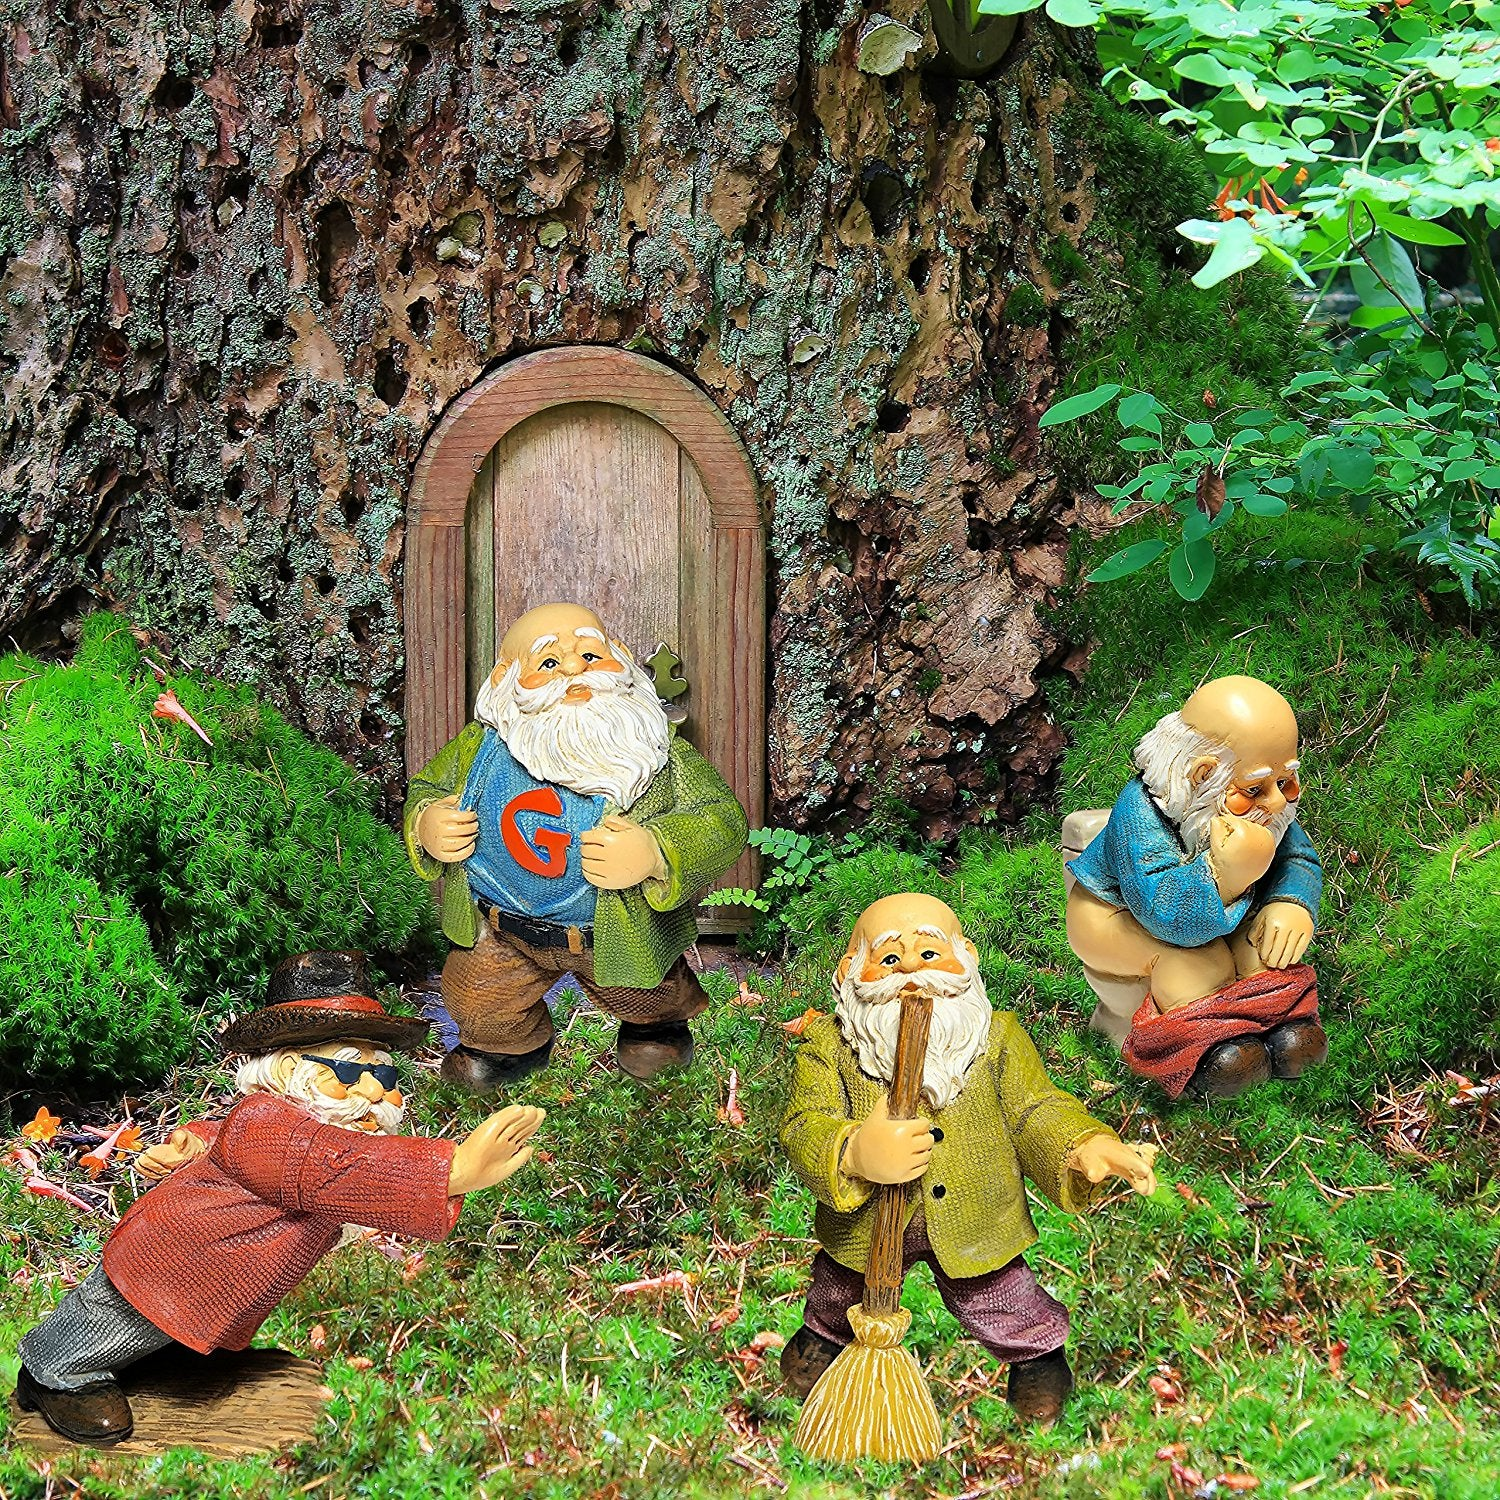 miniature garden gnomes gnome figurines mini funny gnomes set of 4 pcs hand - Funny Garden Gnomes